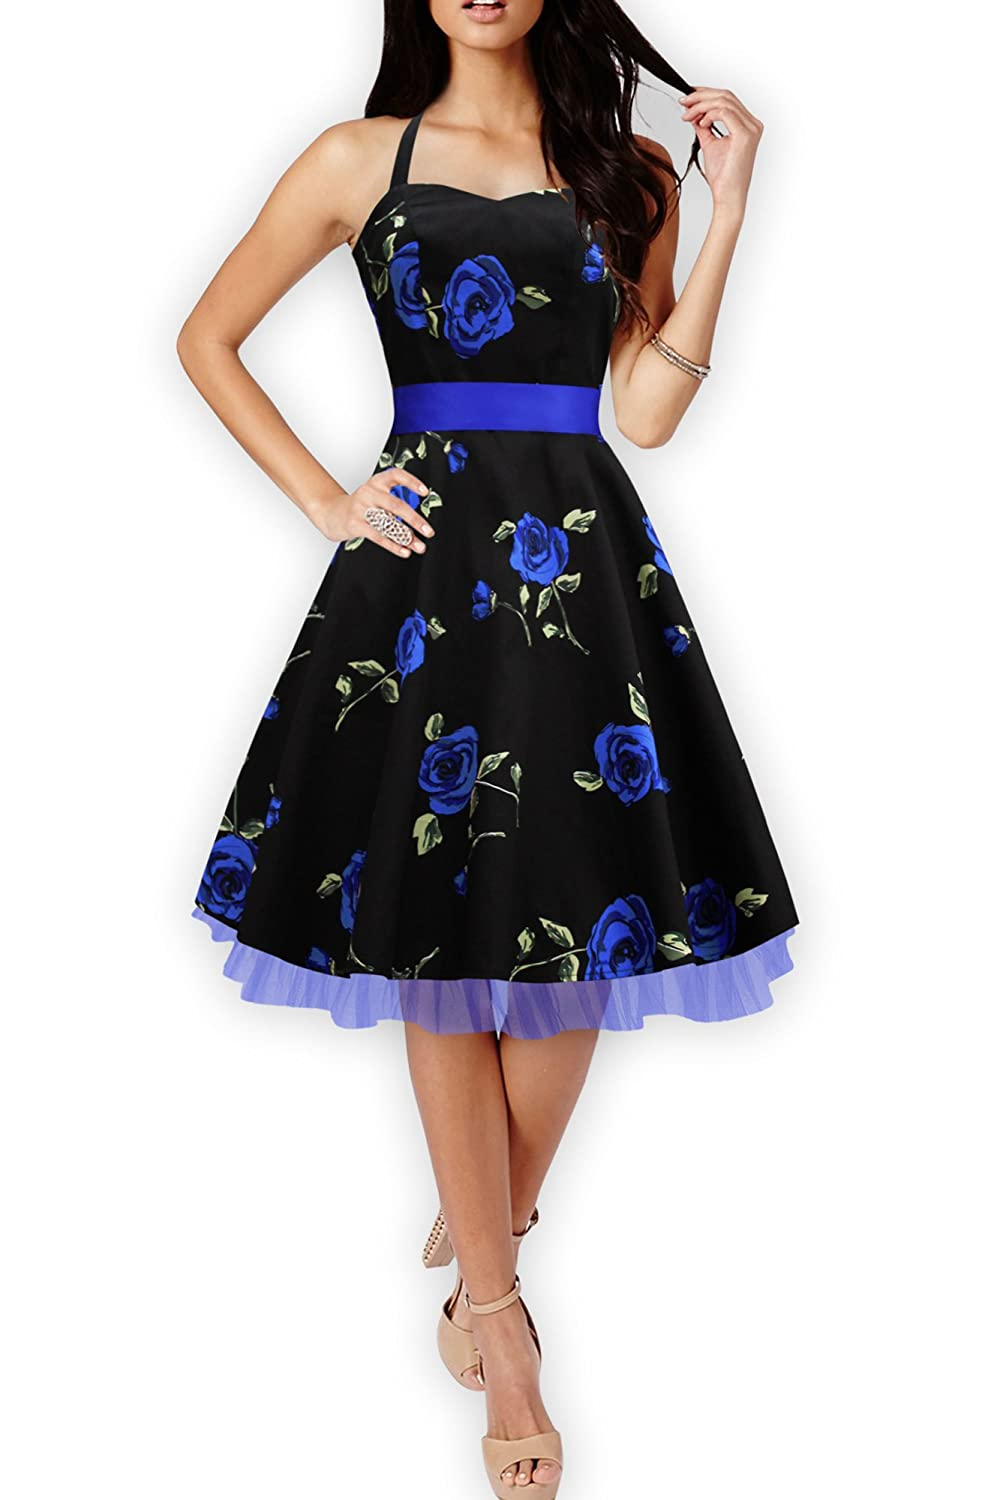 BlackButterfly Rhya' Vintage Infinity 50's Dress